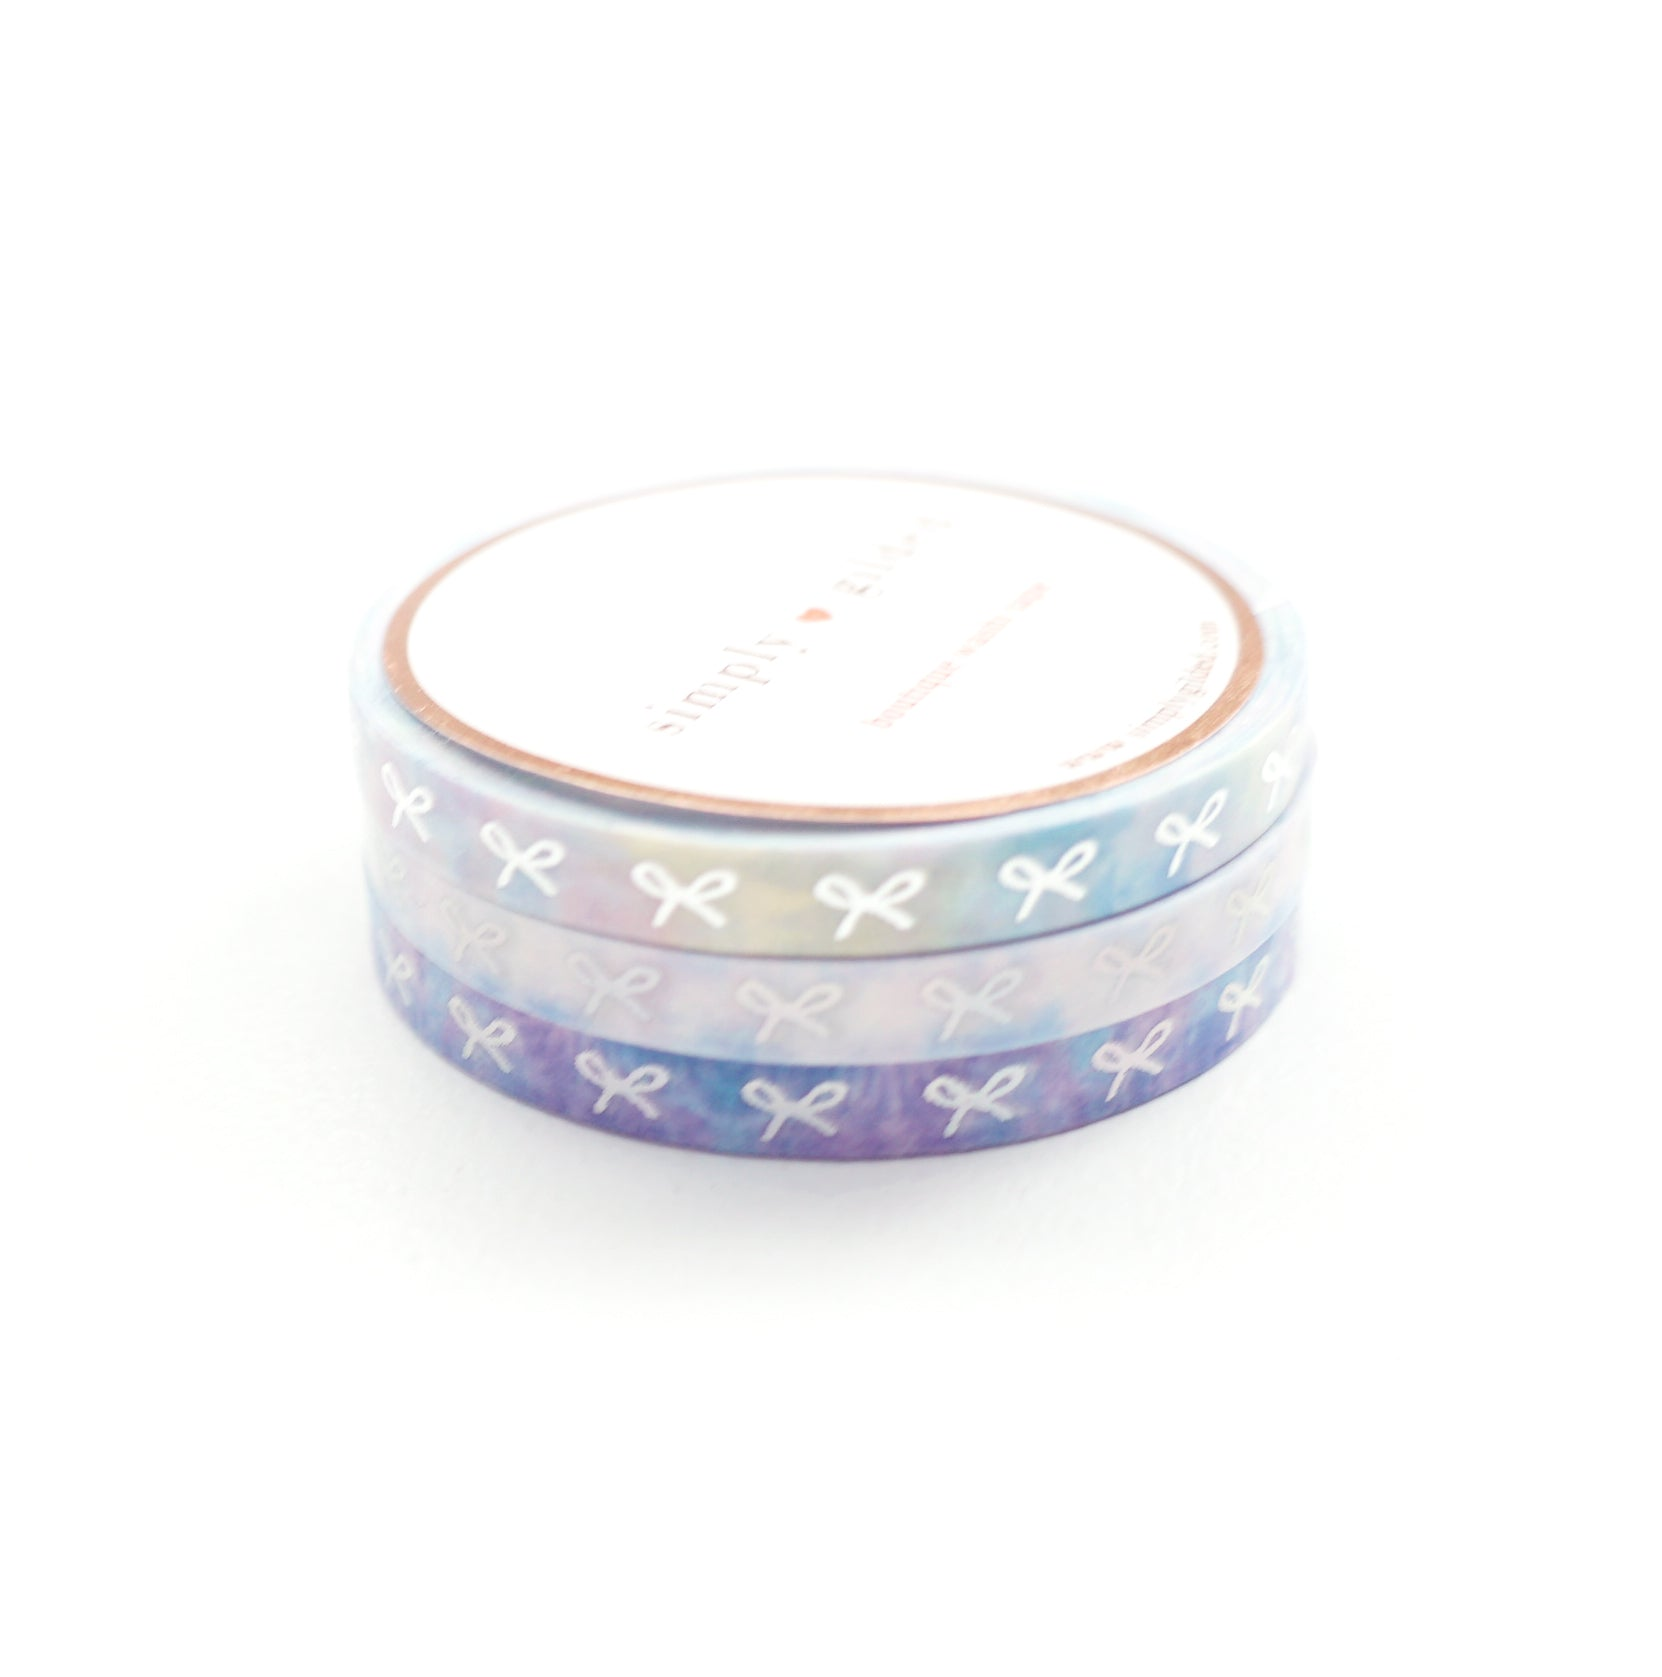 5mm WASHI TAPE set of 3 - TIE-DYE HORIZONTAL BOWS TRIO  + silver / silver holographic (June 22nd Release)